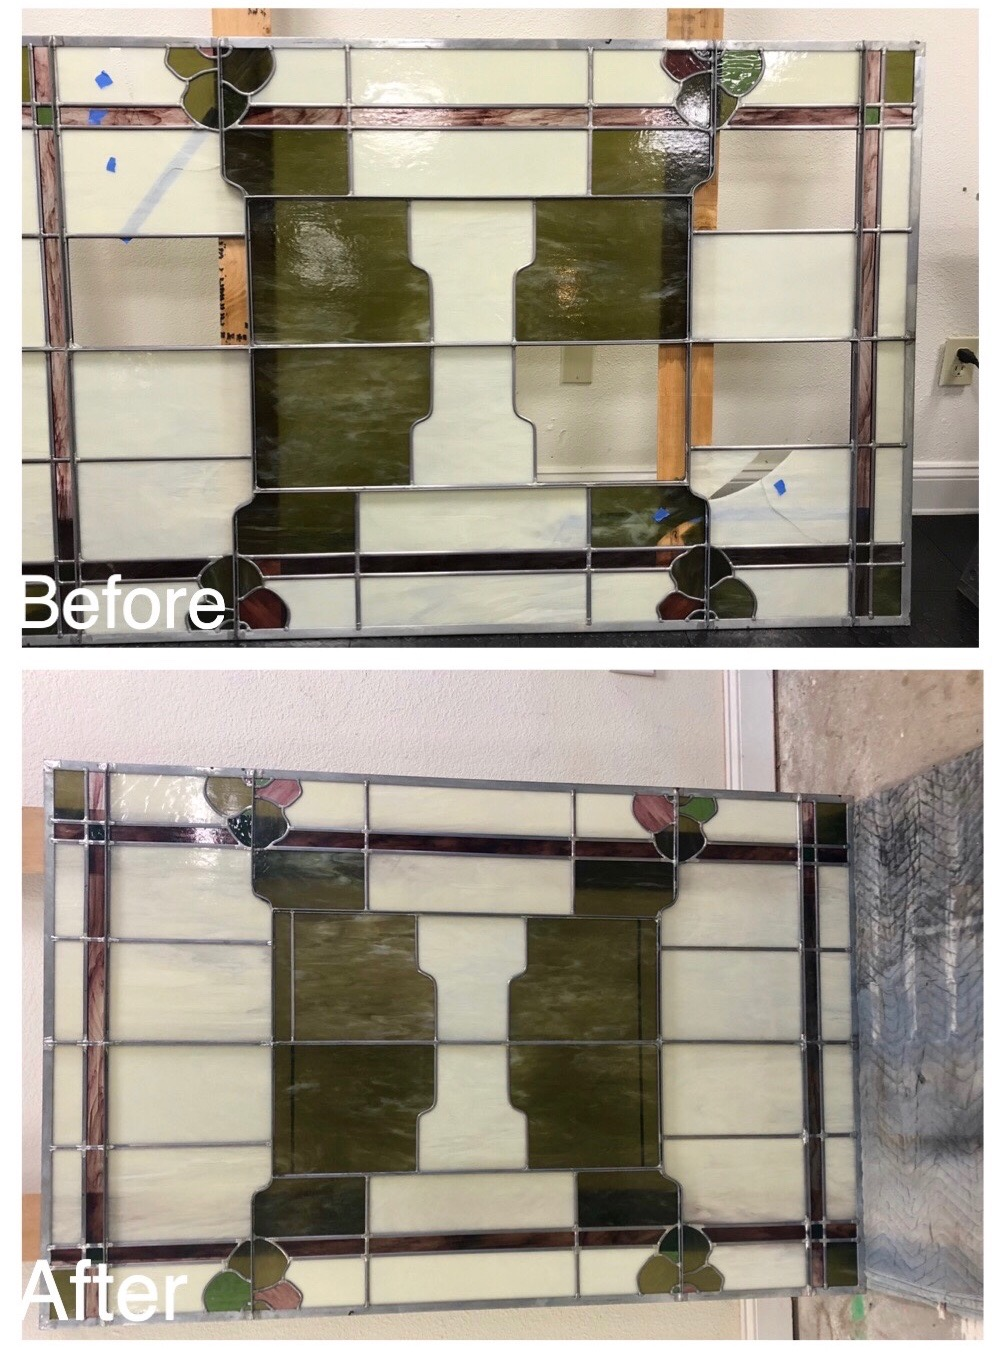 stained glass repair skylight craftsman cloud lift before and after legacy glass studios california (1).jpg